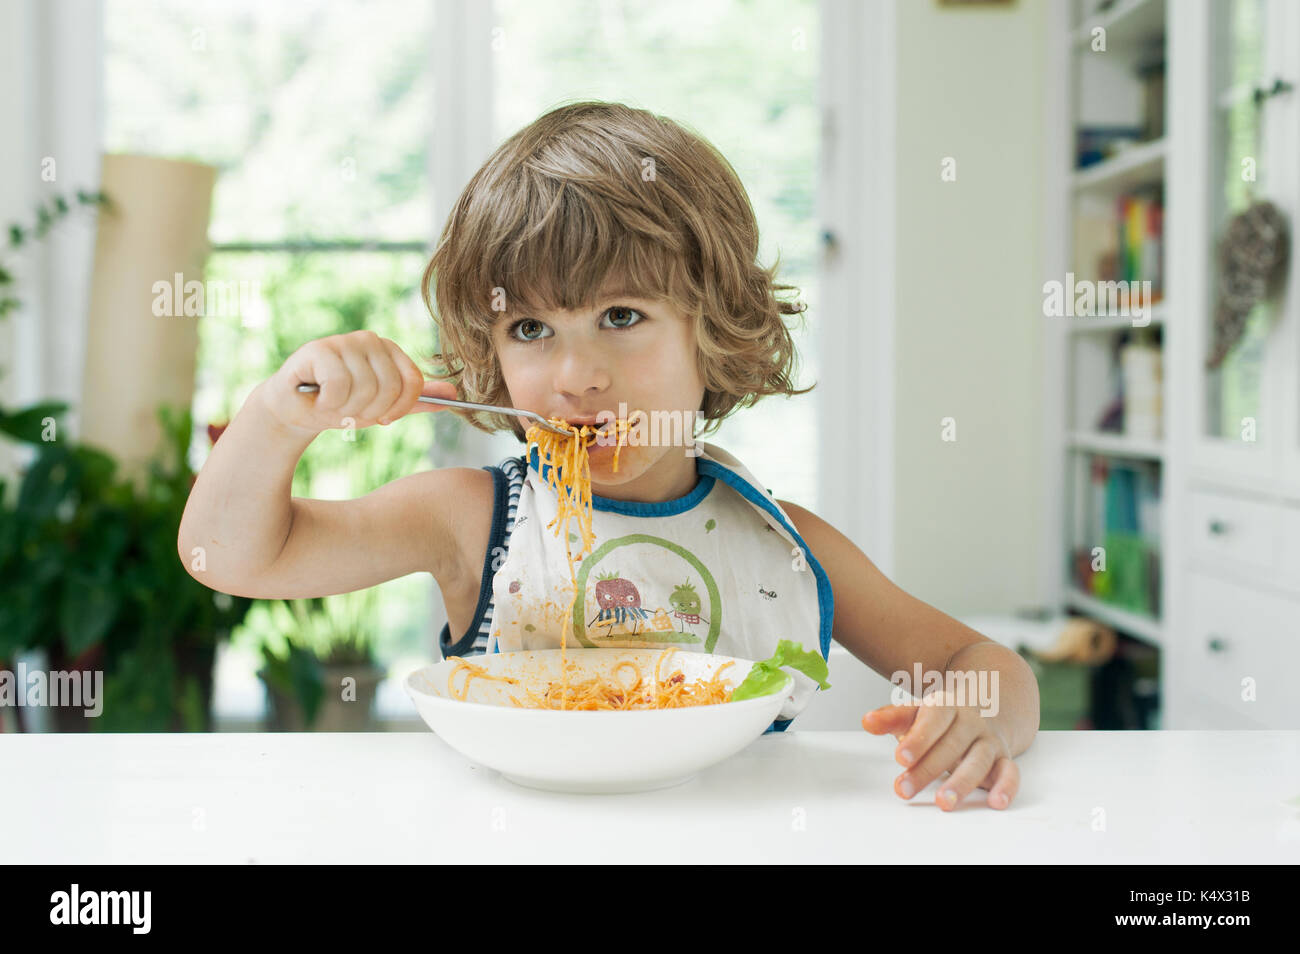 Portrait of a cute young boy making a mess while eating pasta for lunch - Stock Image